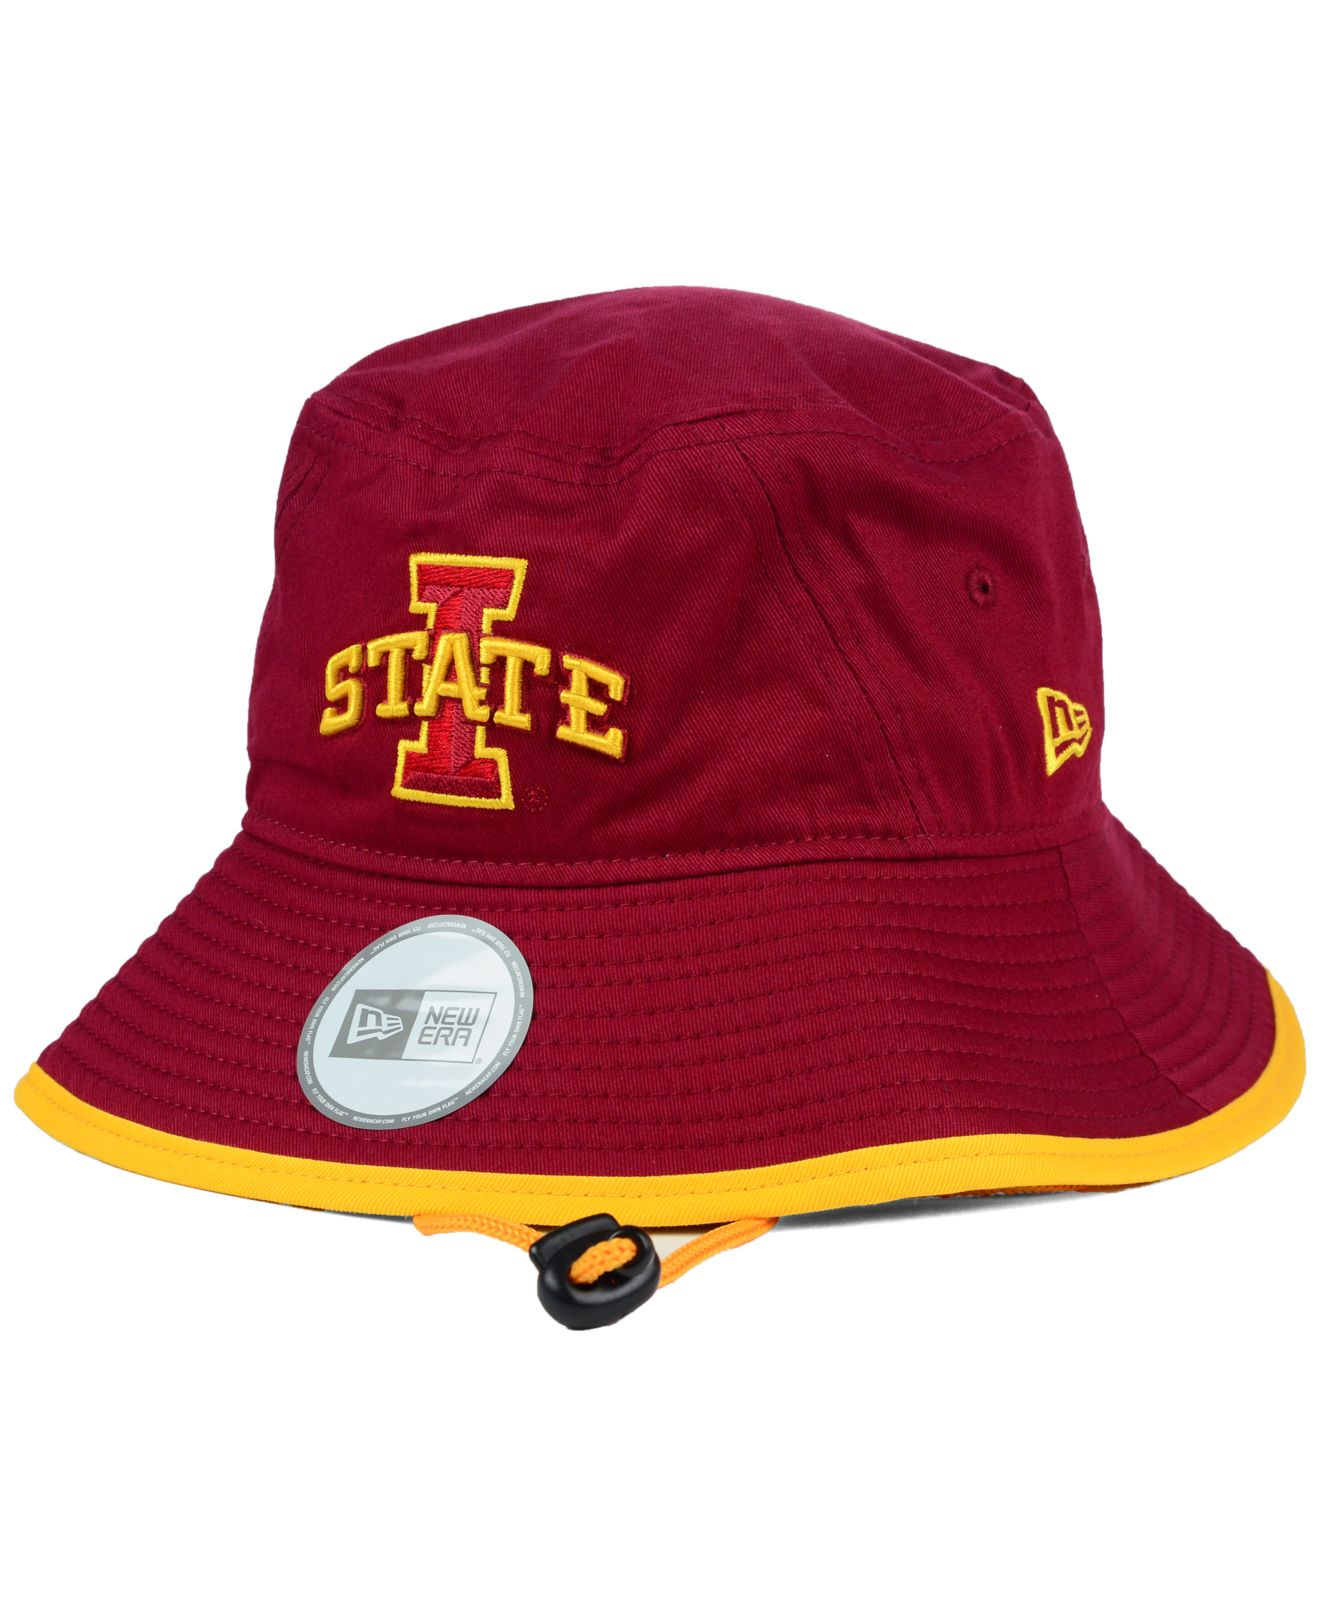 sports shoes 50467 f3172 ... cheap lyst ktz iowa state cyclones tip bucket hat in red for men 8b42e  5cdaa